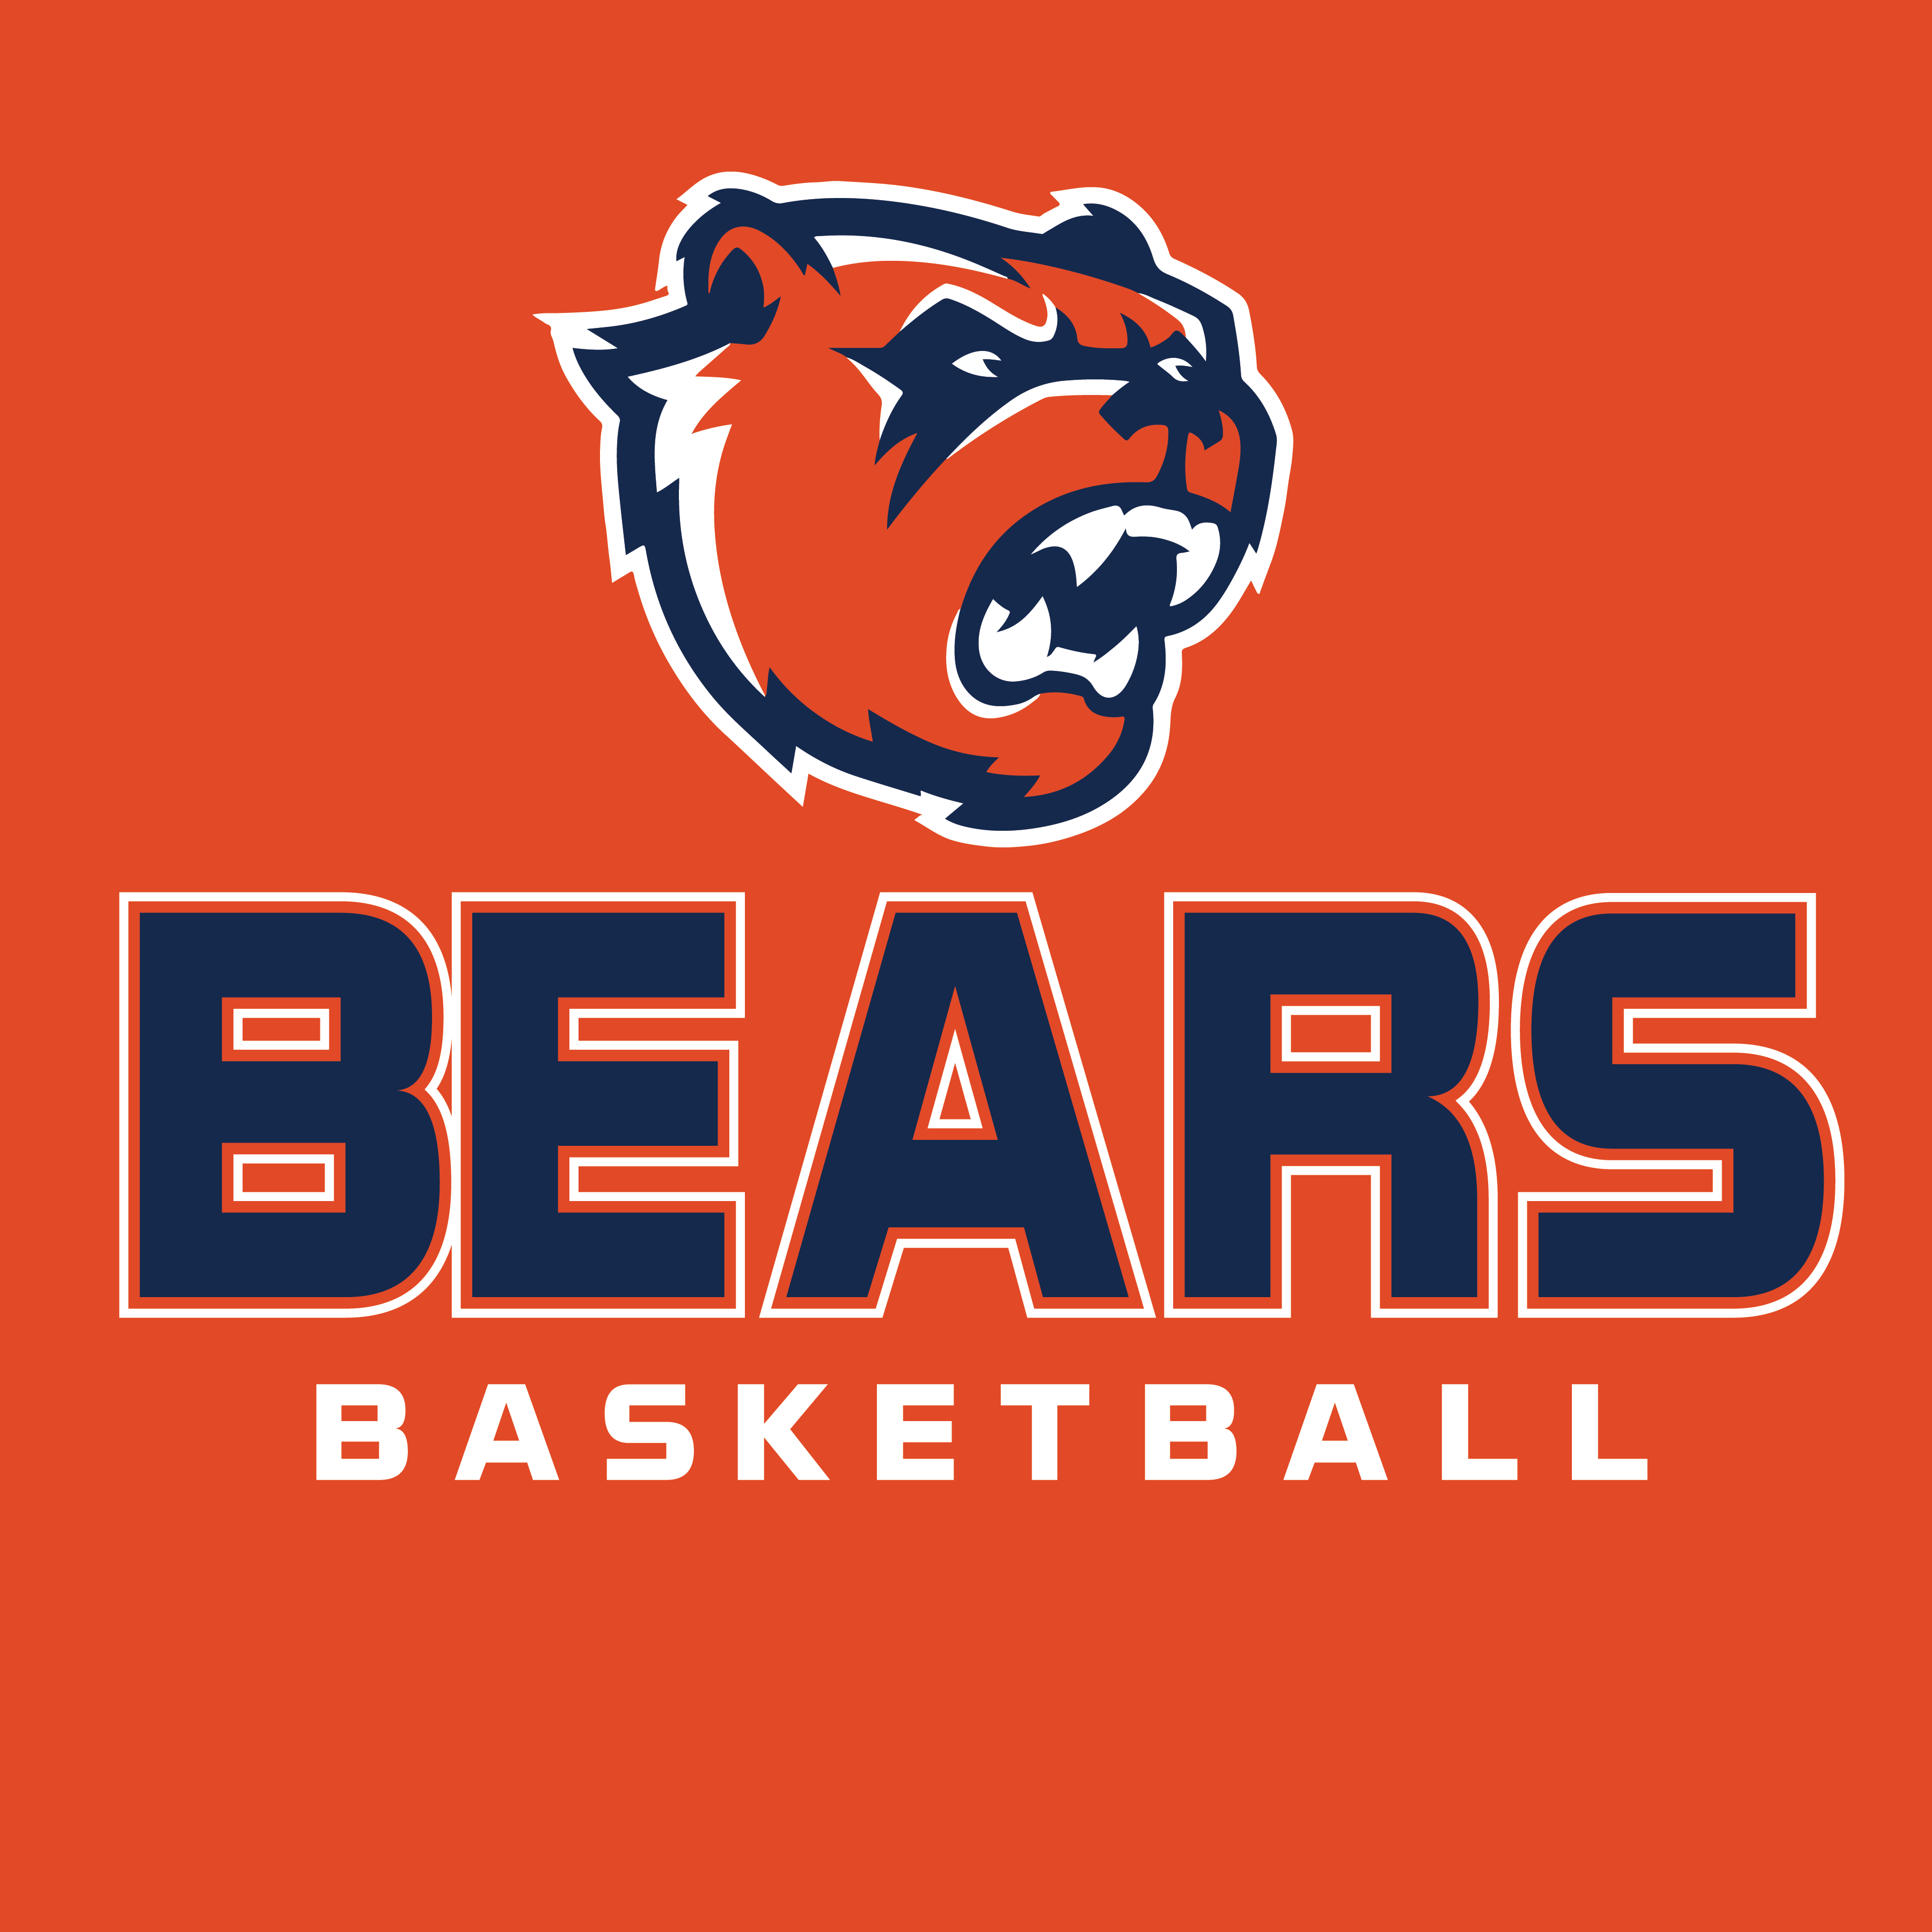 BEARS BASKETBALL (BIG HEAD)